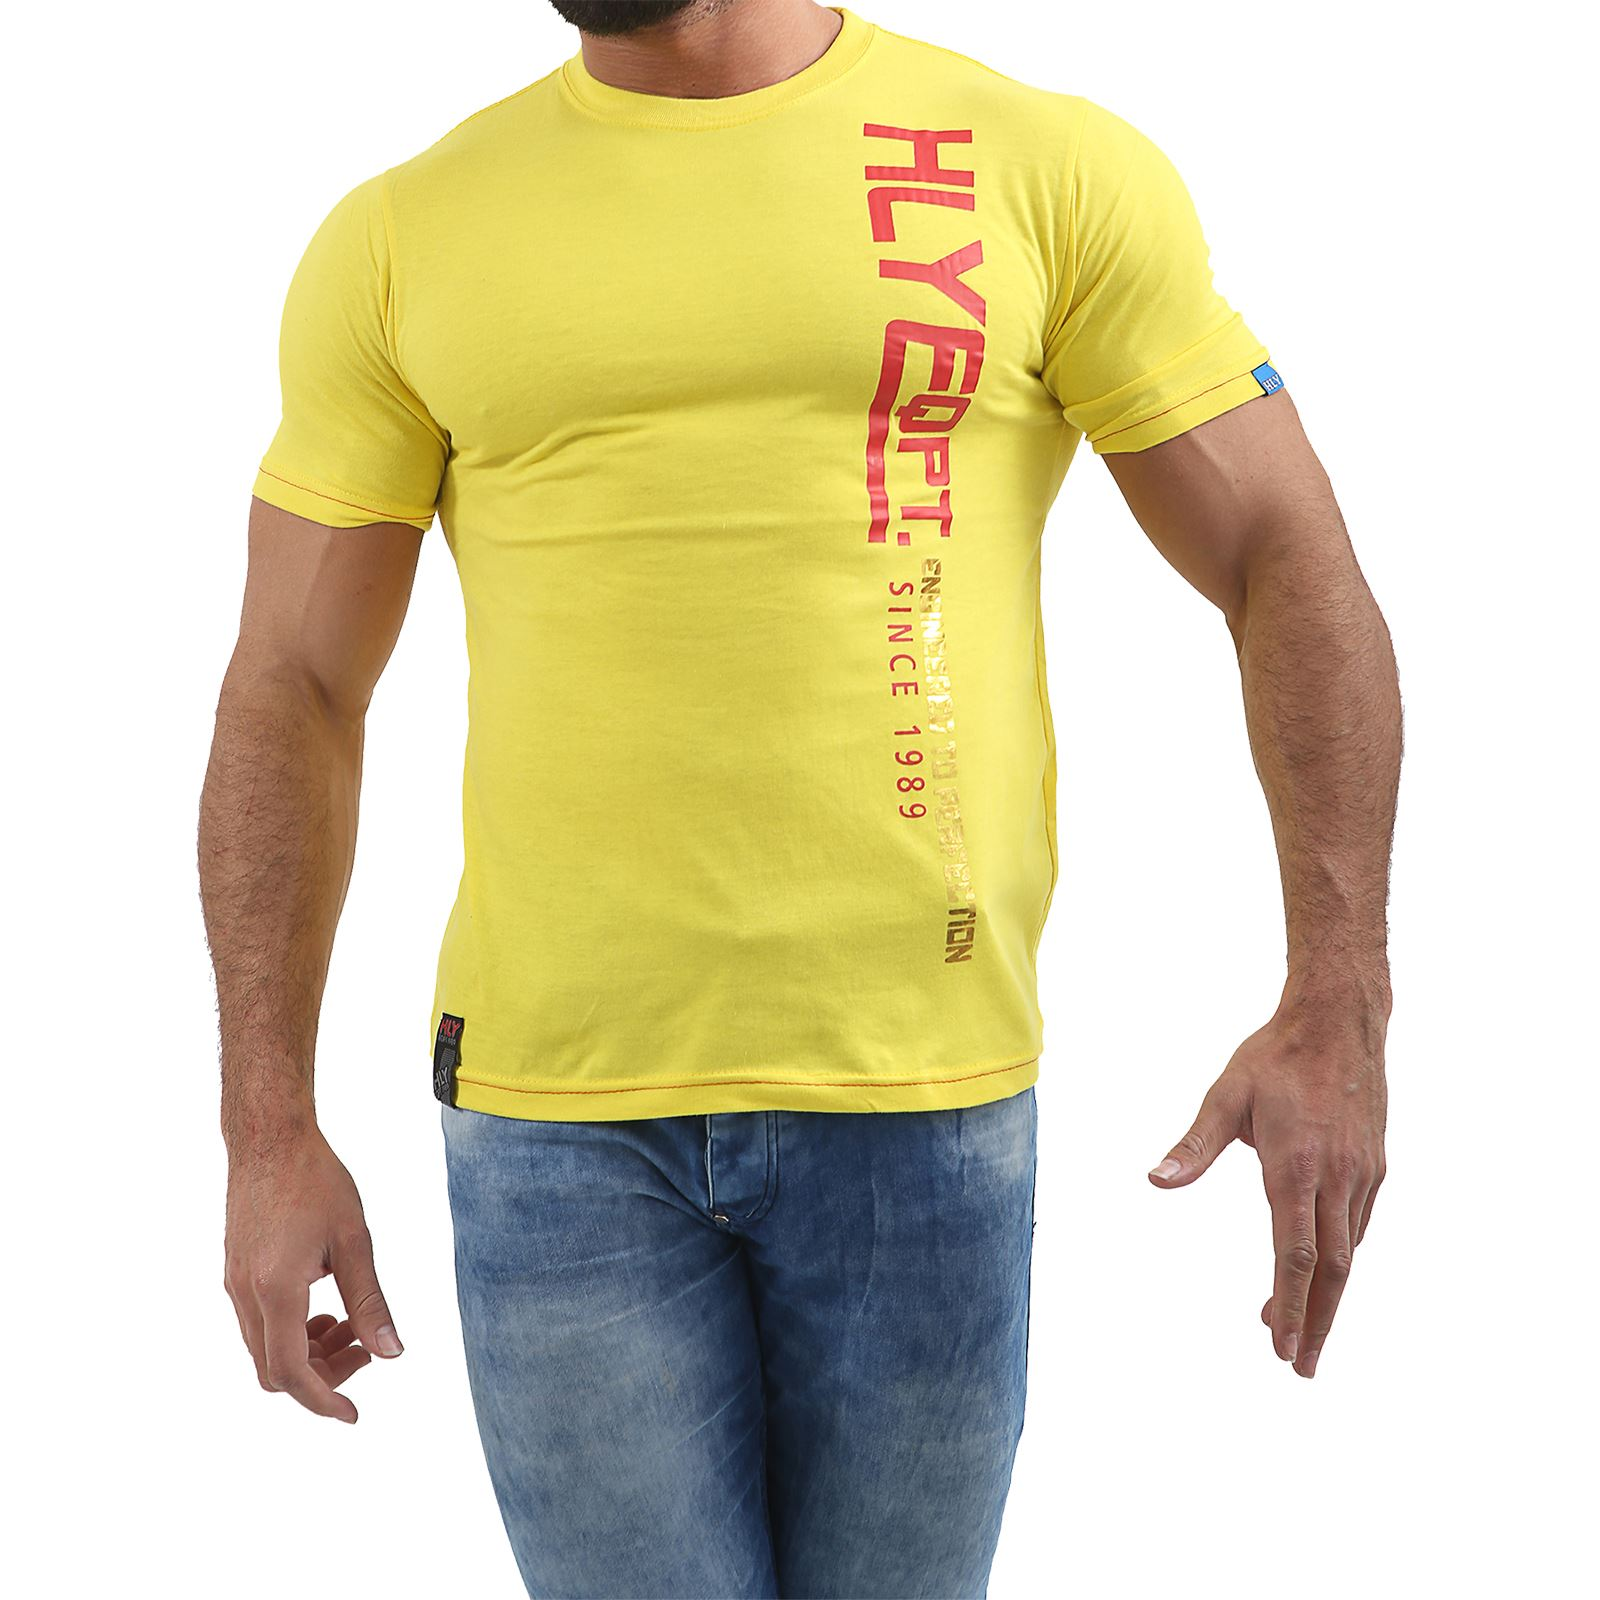 Mens-HLY-EQPT-Printed-T-Shirt-100-Cotton-Gym-Athletic-Training-Tee-Top-Summer thumbnail 16